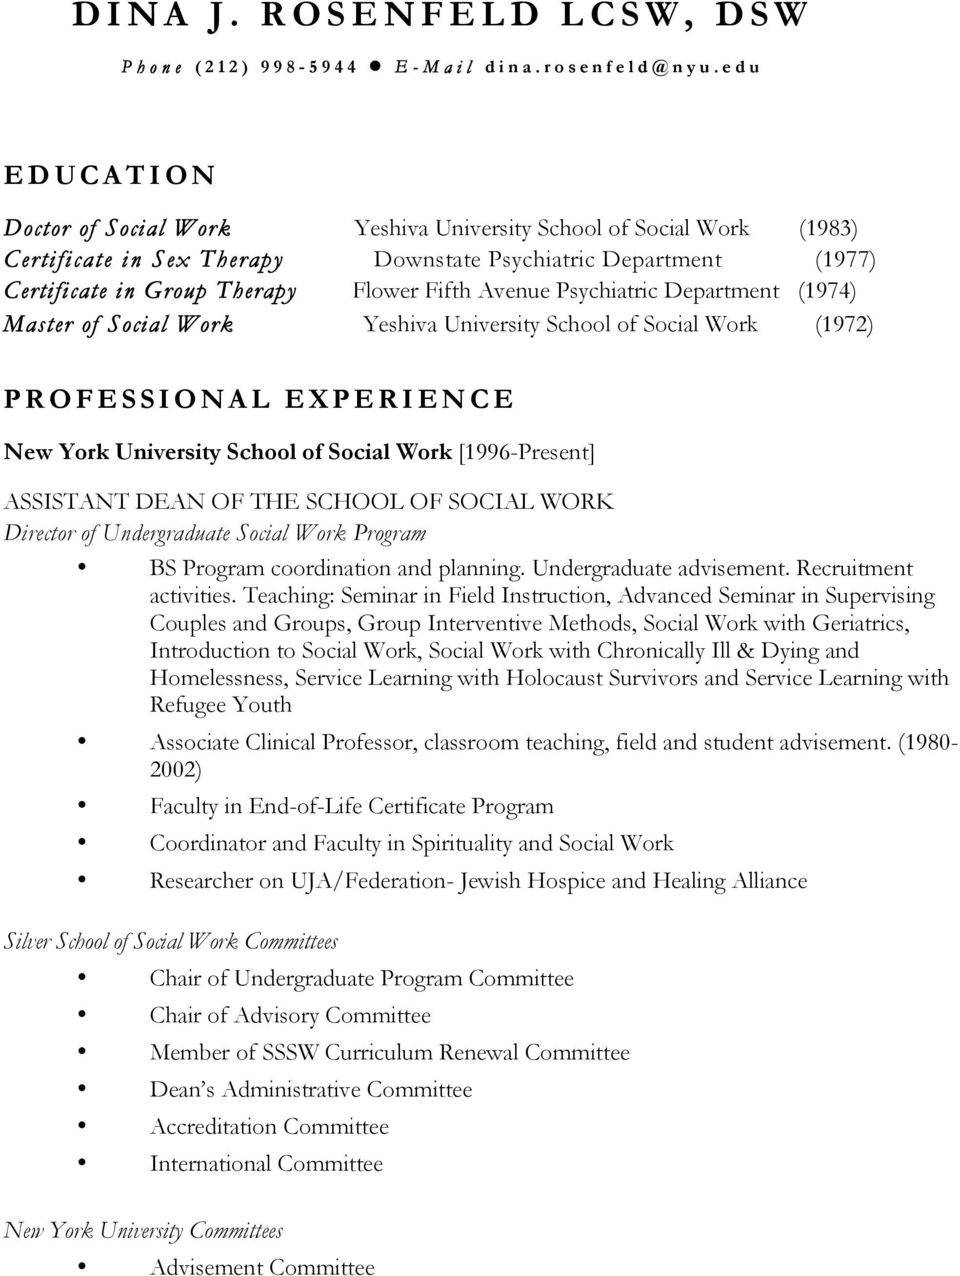 Avenue Psychiatric Department (1974) Master of Social Work Yeshiva University School of Social Work (1972) PROFESSIONAL EXPERIENCE New York University School of Social Work [1996-Present] ASSISTANT